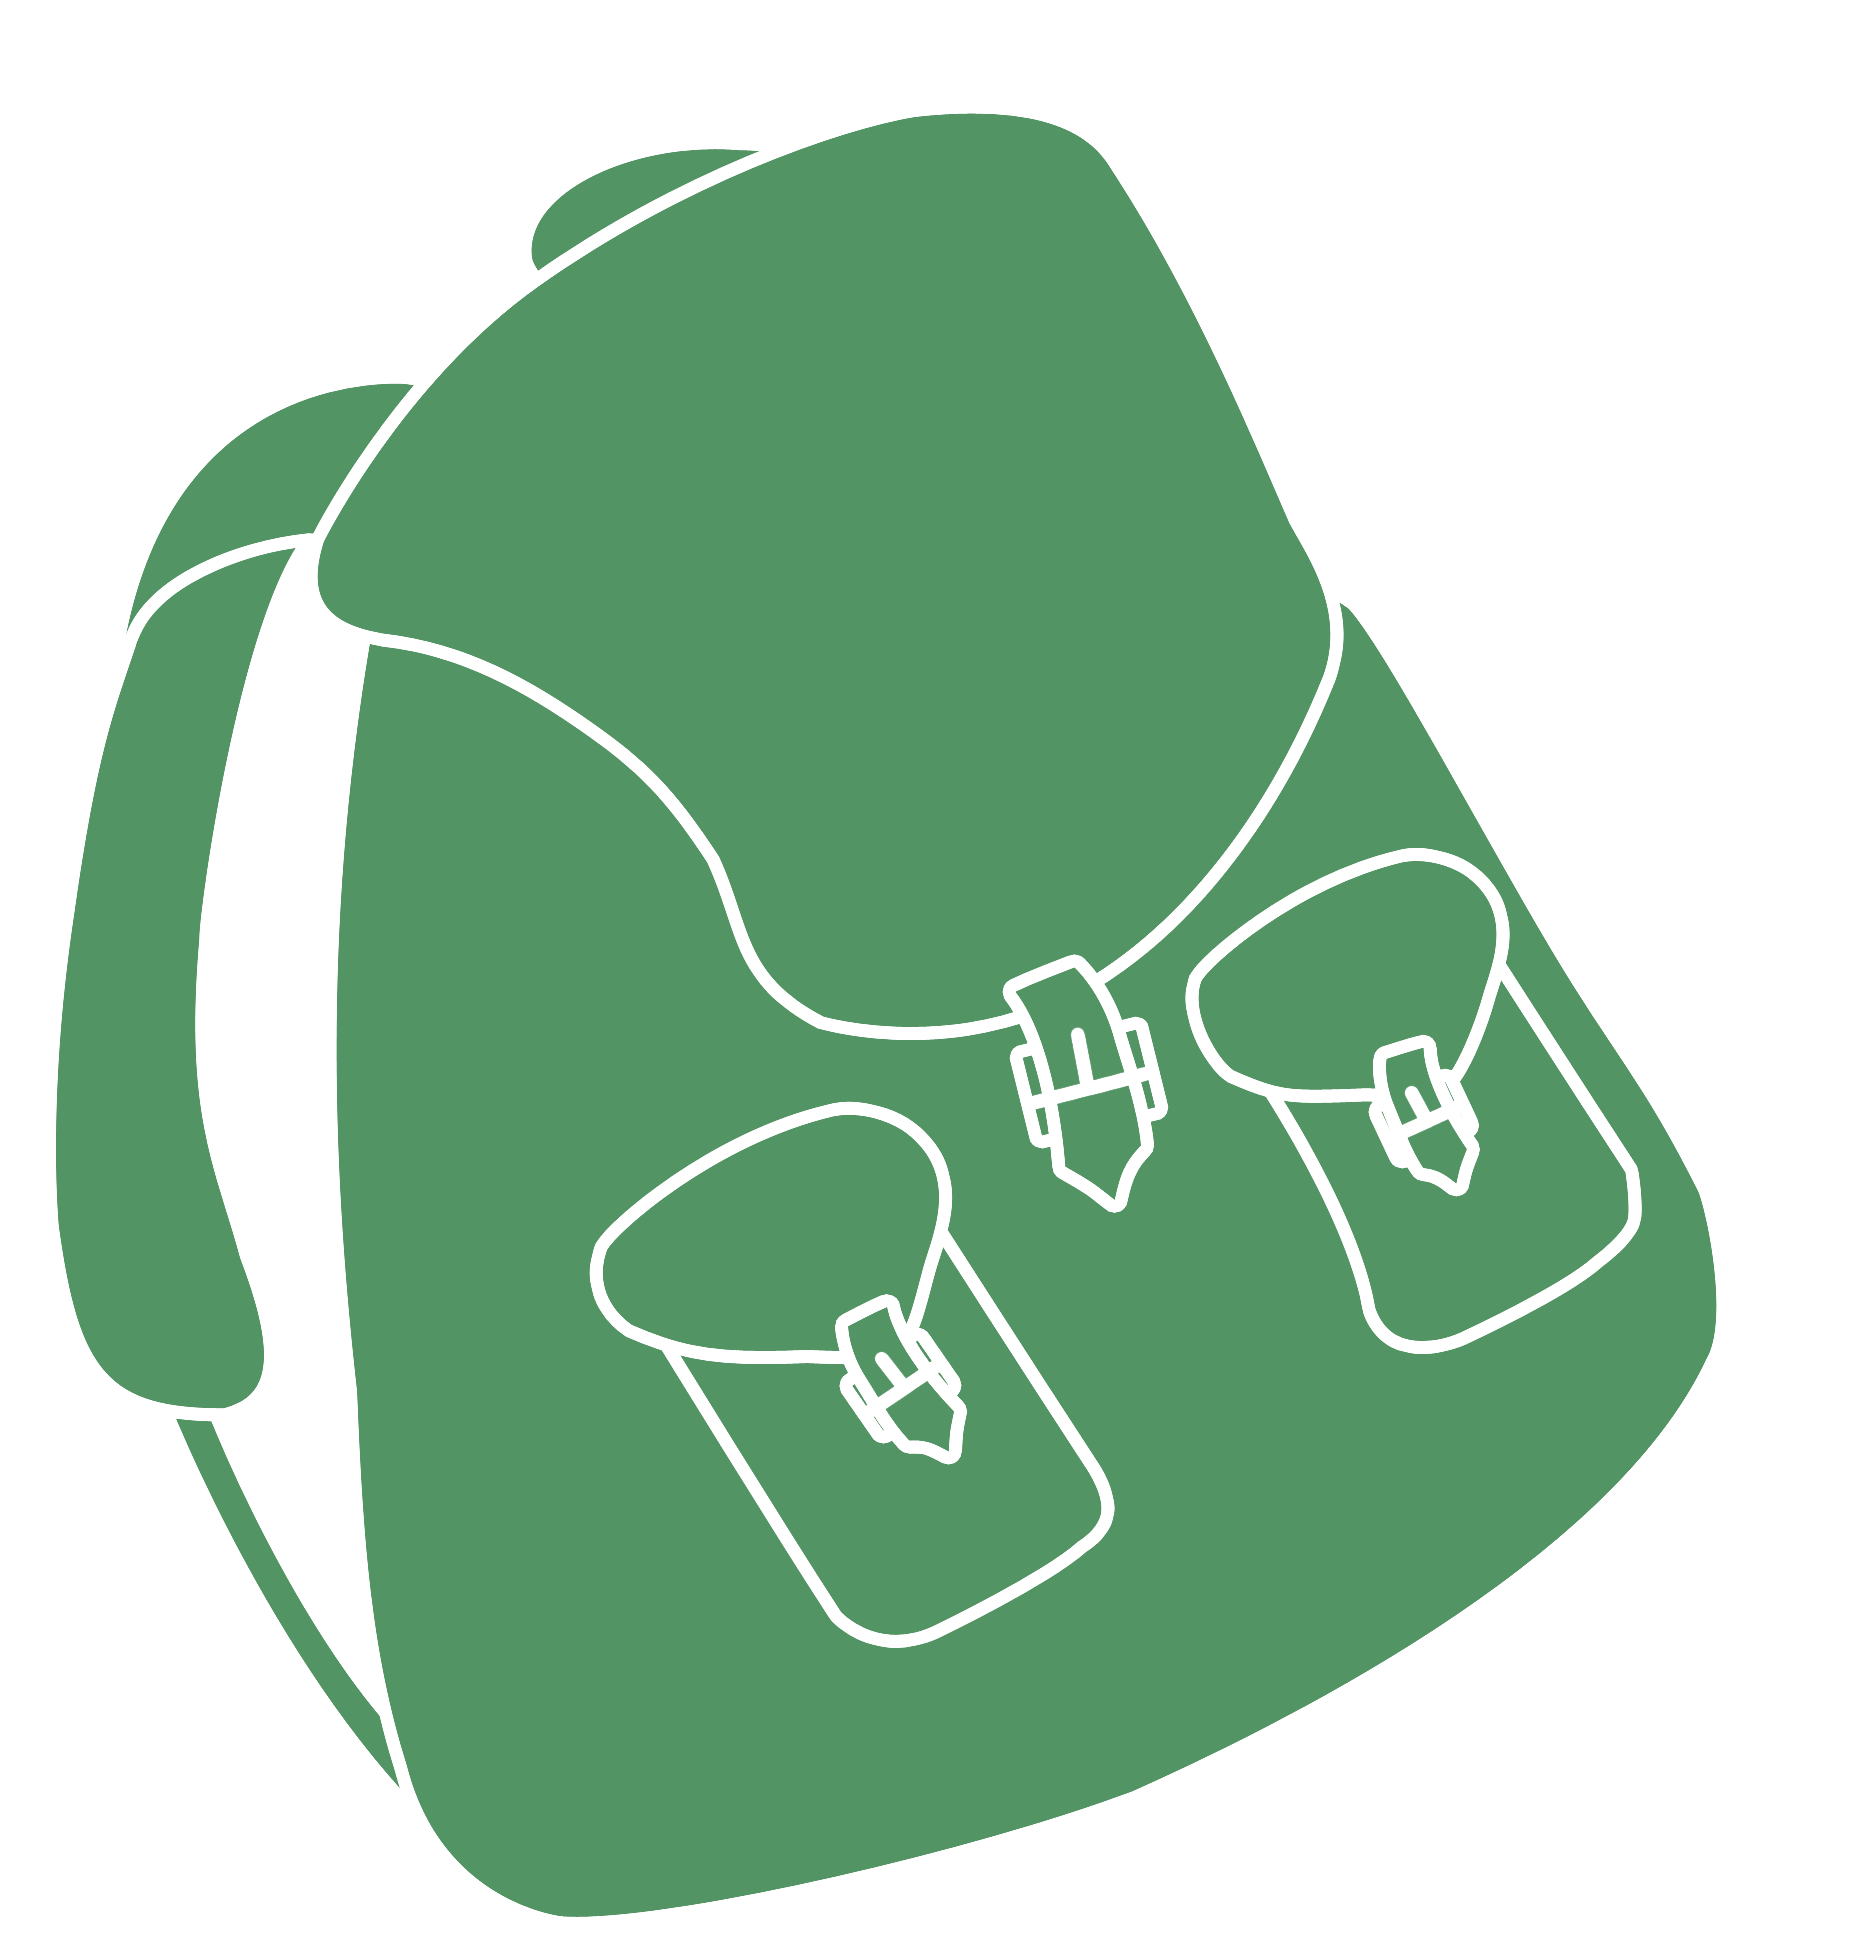 Adventure clipart walking boot The Adventure Ransome Society Arthur